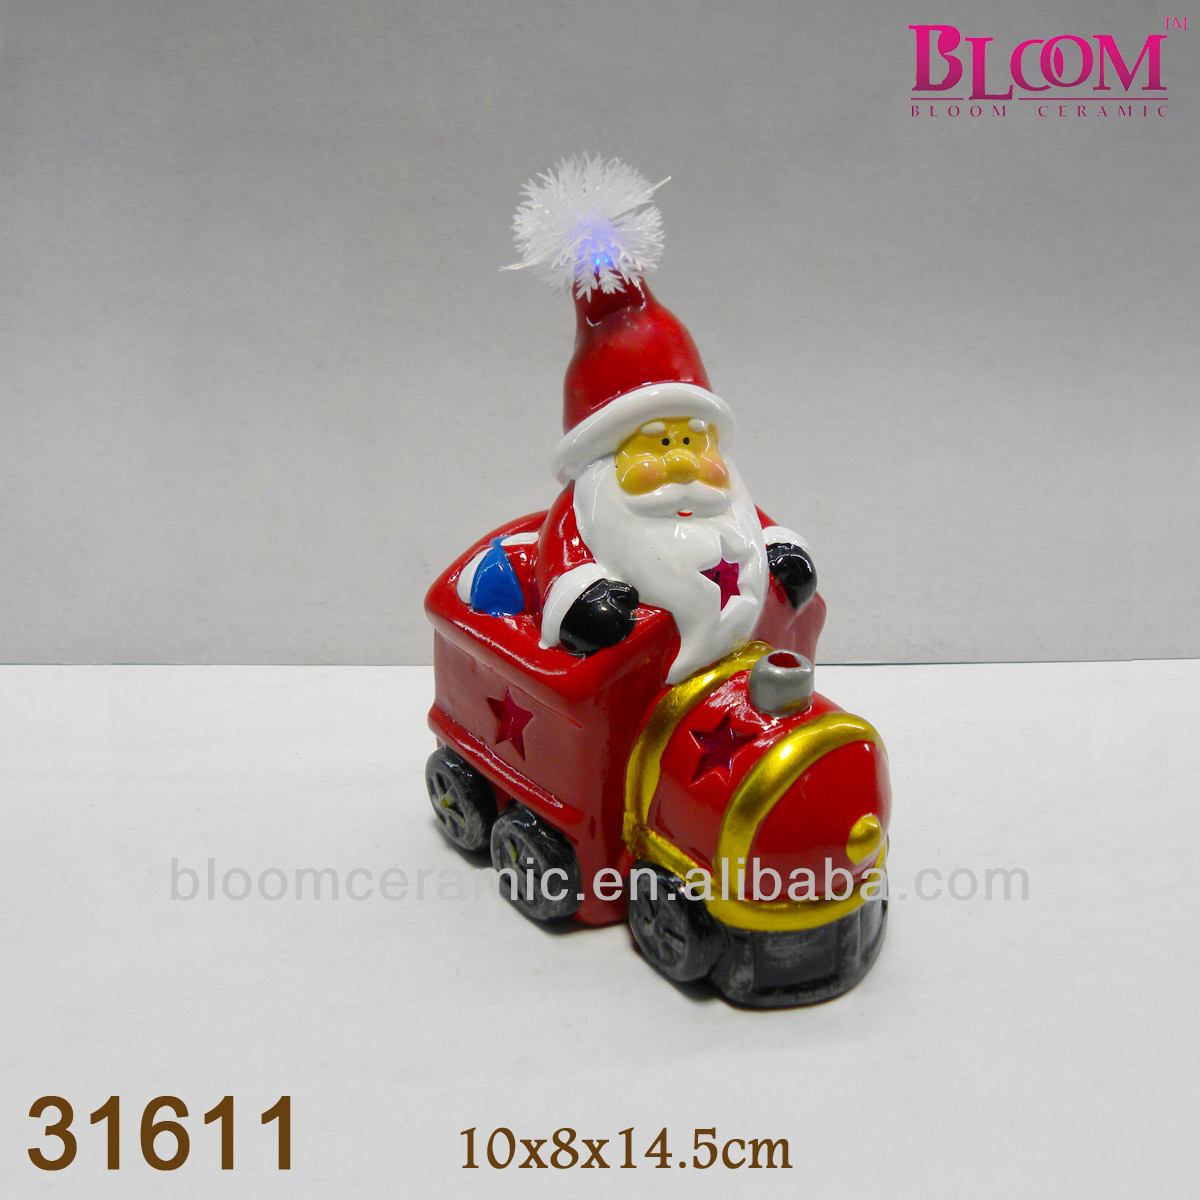 Christmas Train Ornaments, Christmas Train Ornaments Suppliers And  Manufacturers At Alibaba